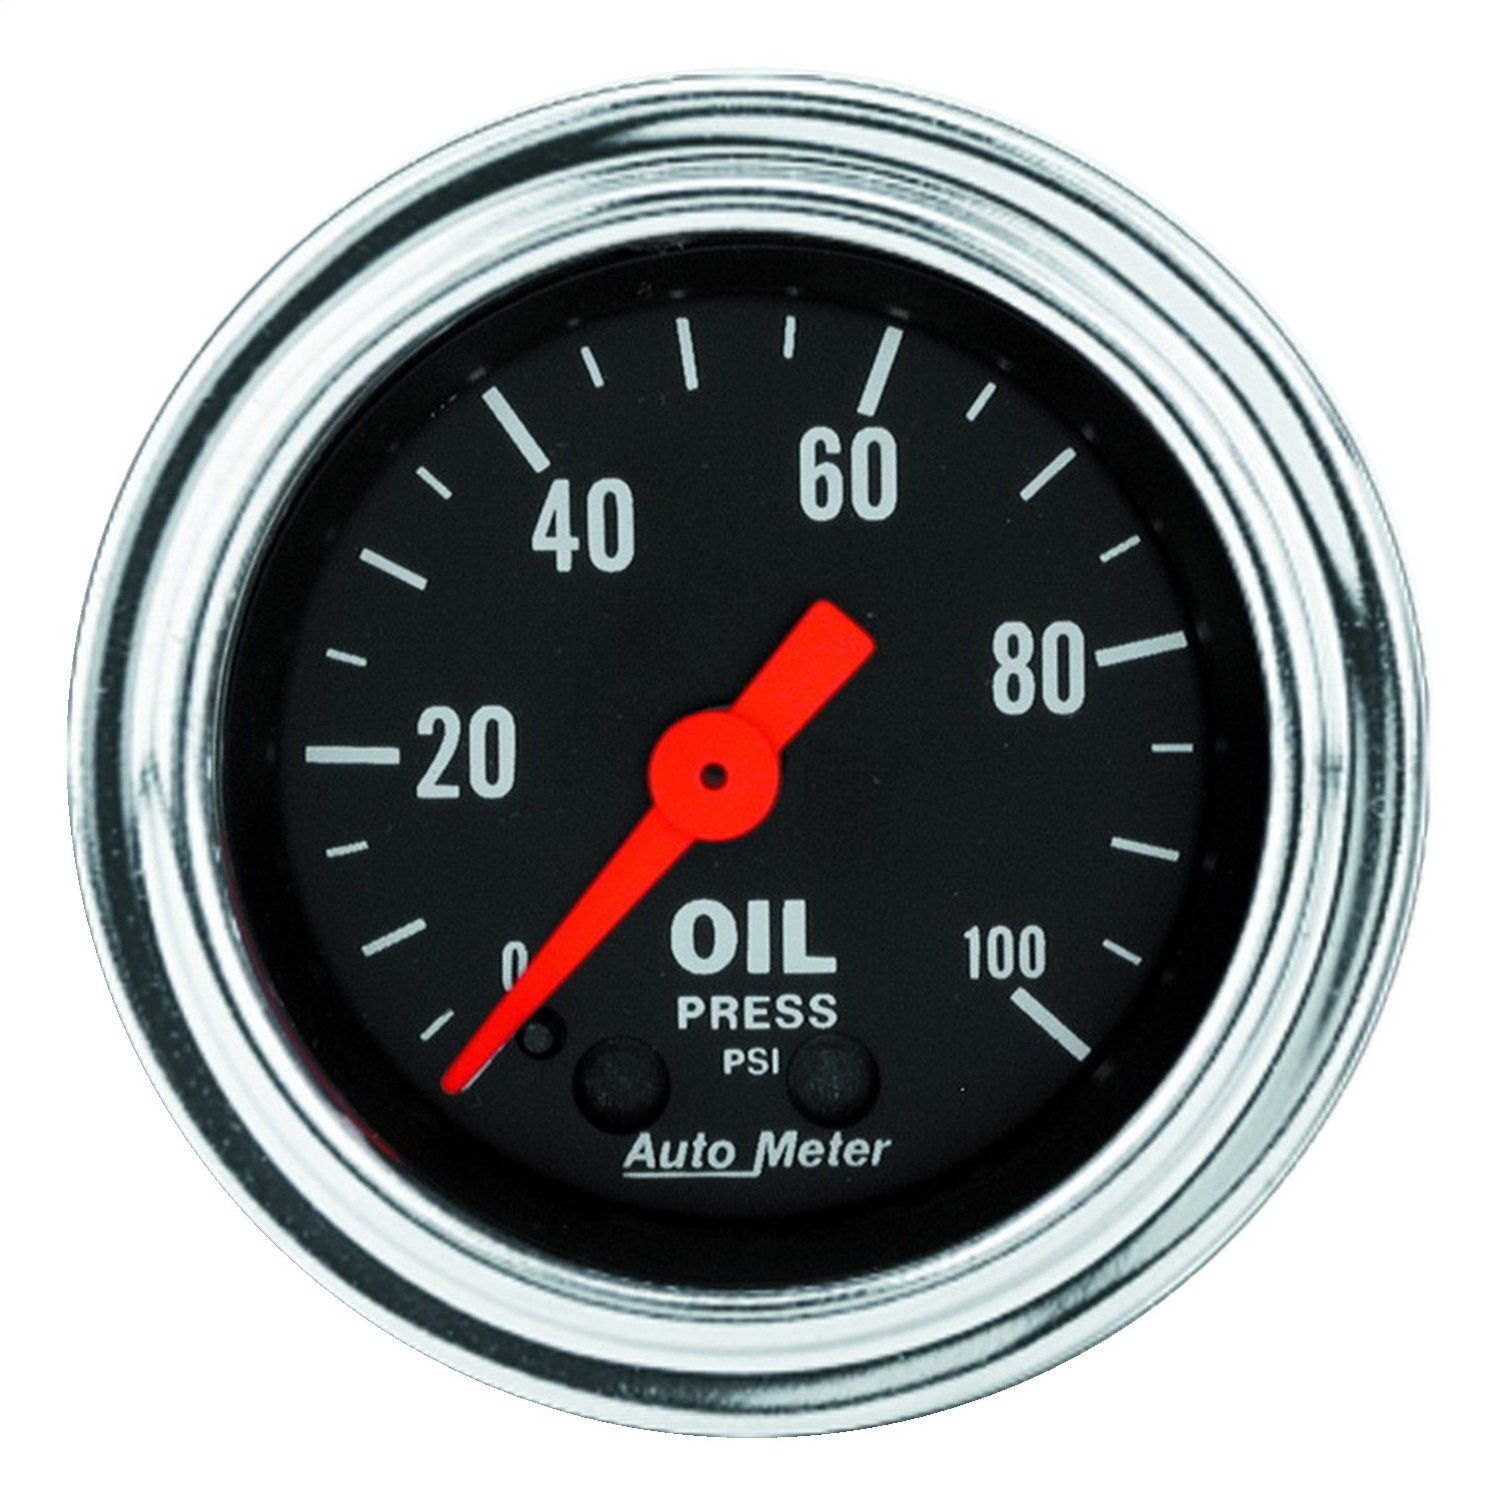 Auto Meter 2421 Traditional Chrome 2-1/16' 0-100 PSI Mechanical Oil Pressure Gauge